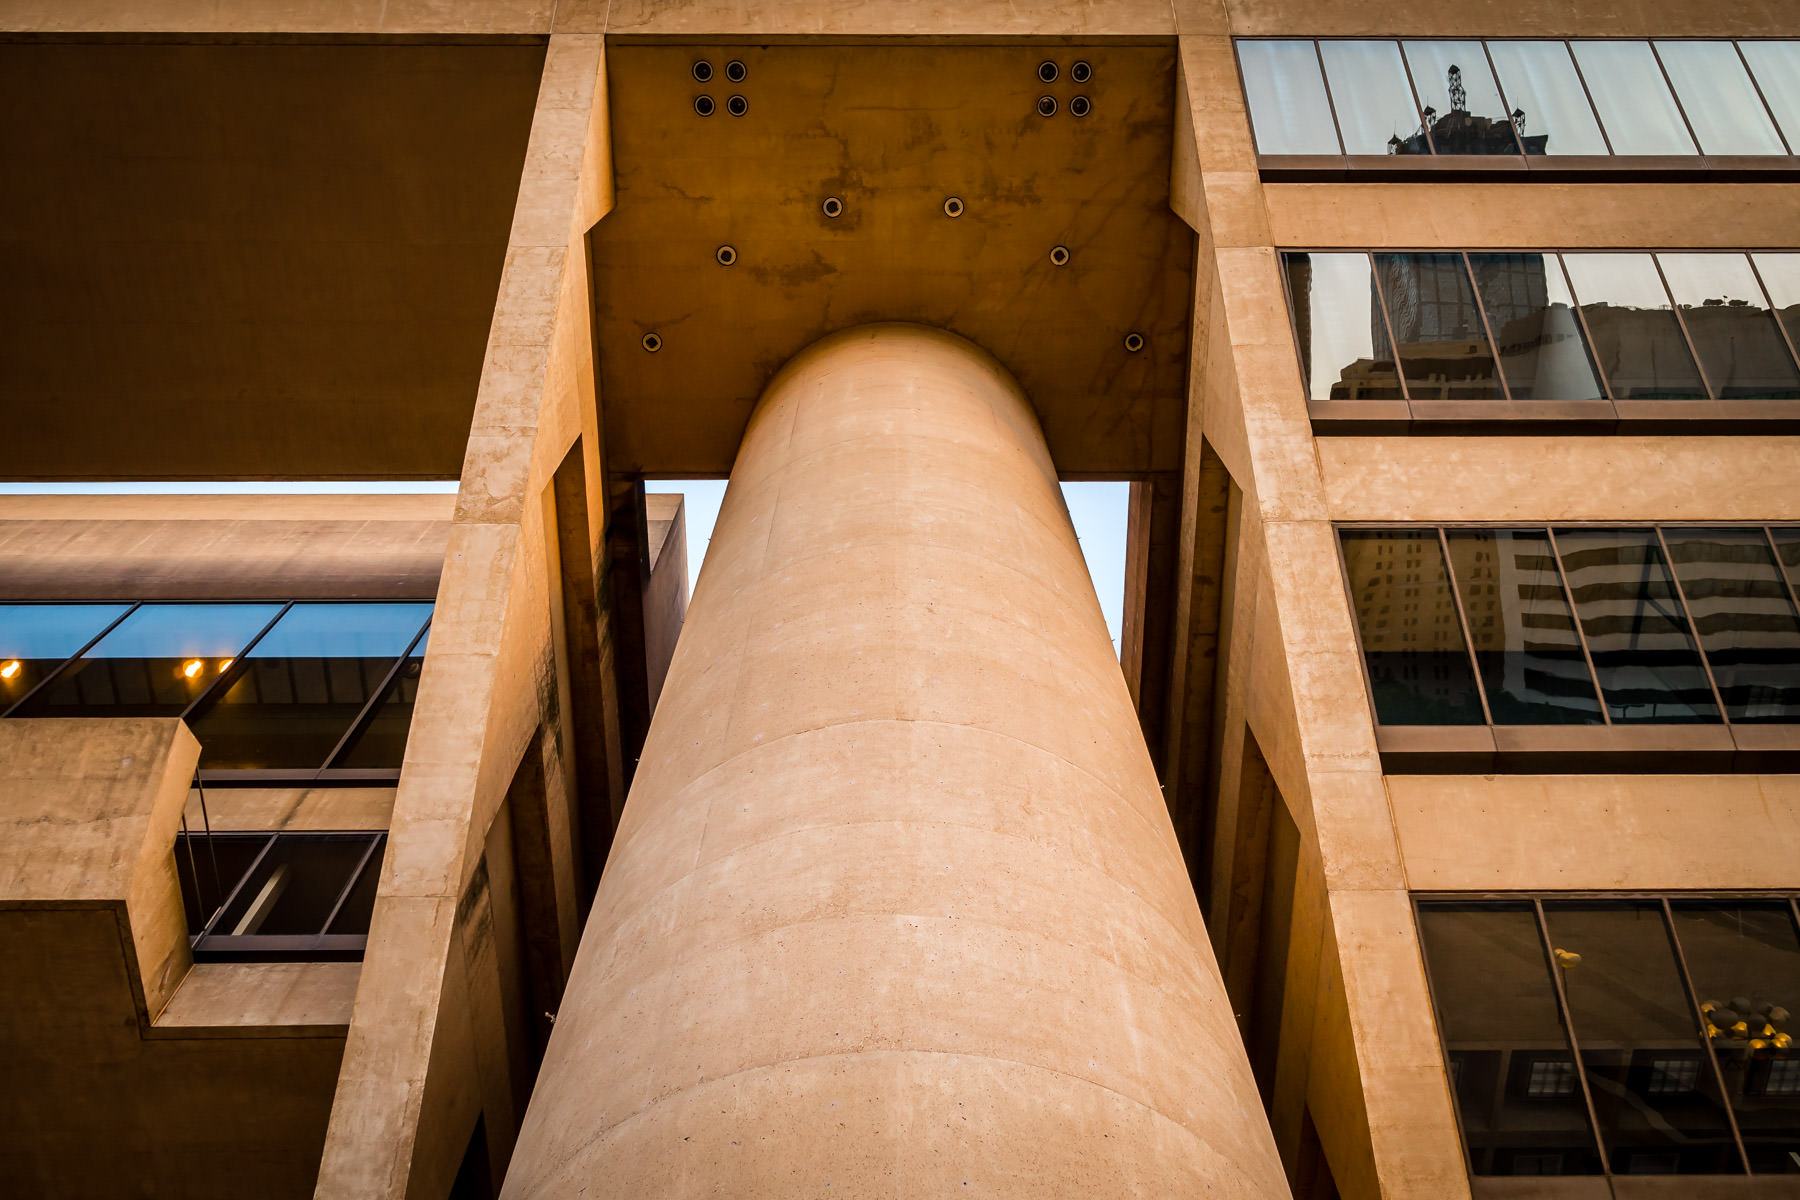 Architectural detail of the I.M. Pei-designed Dallas City Hall.